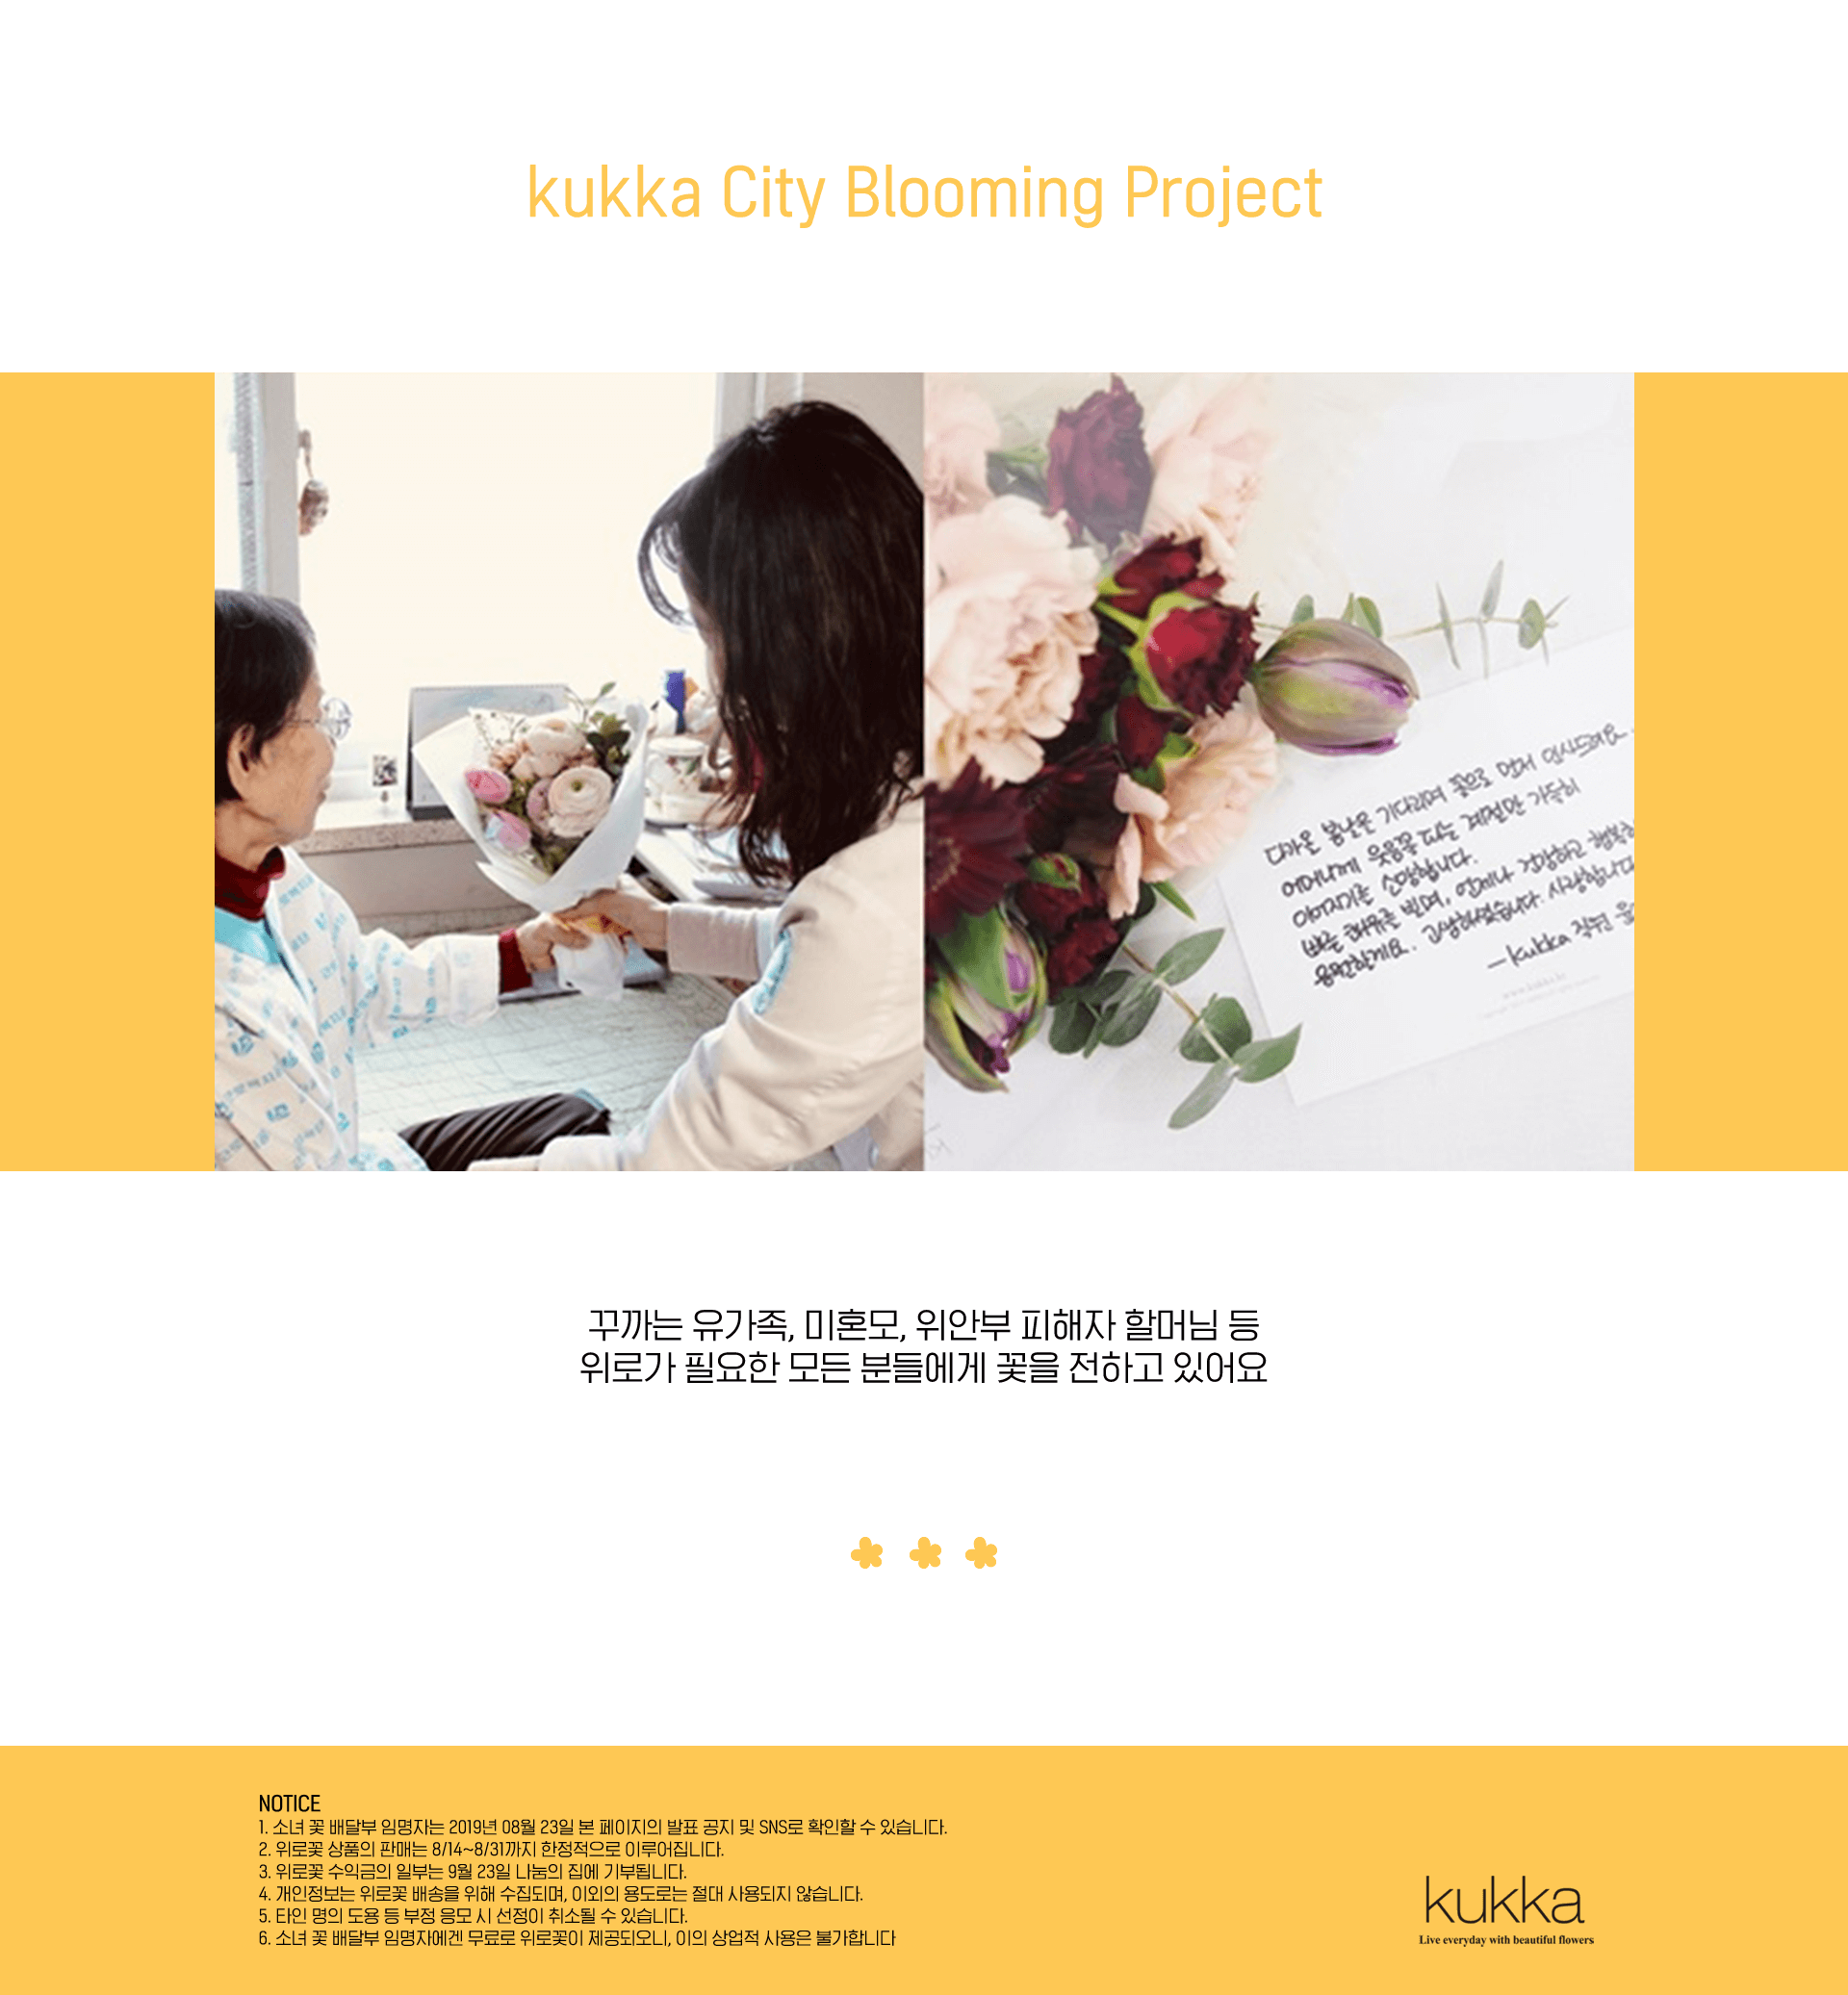 kukka City Blooming Project